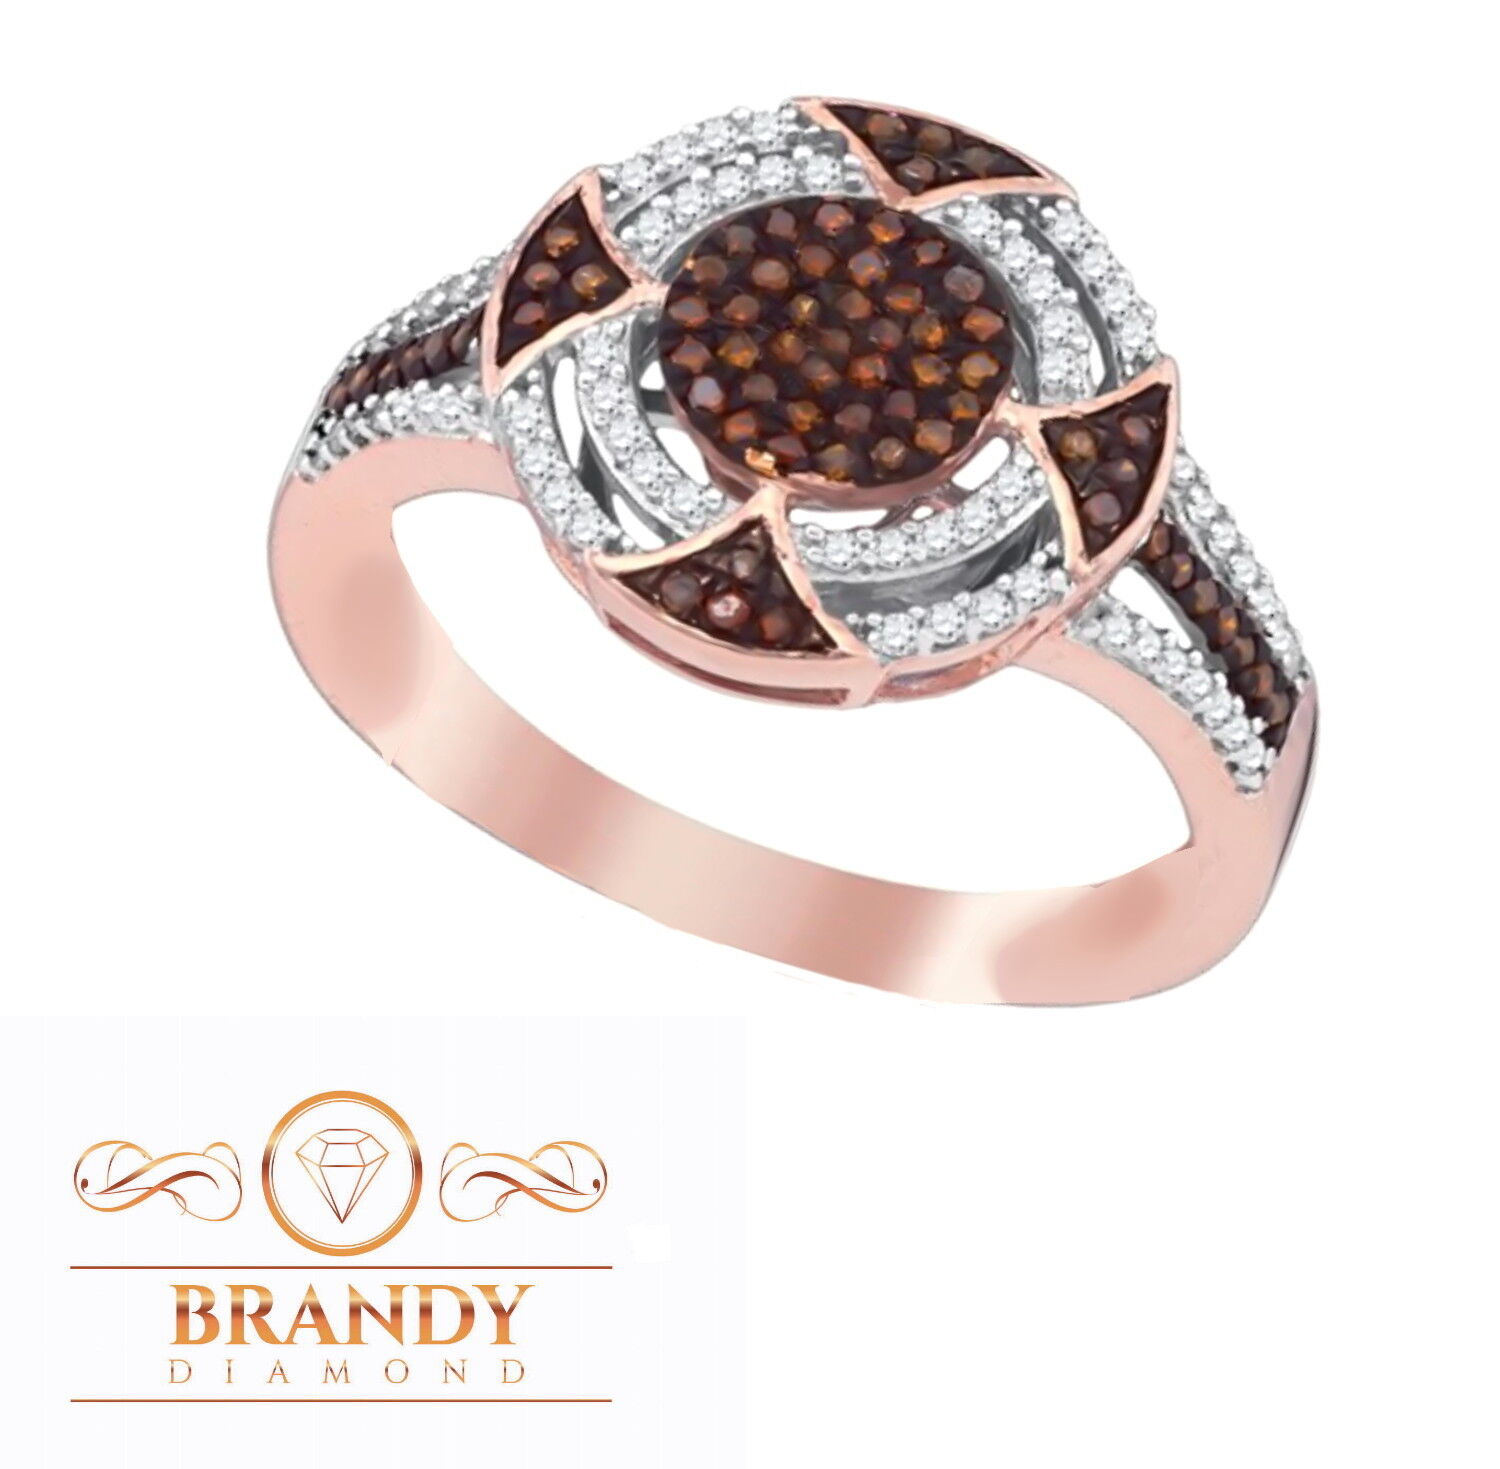 Brandy Diamond Chocolate Brown 10K pink gold Double Halo Fascinating Ring .36 Ct